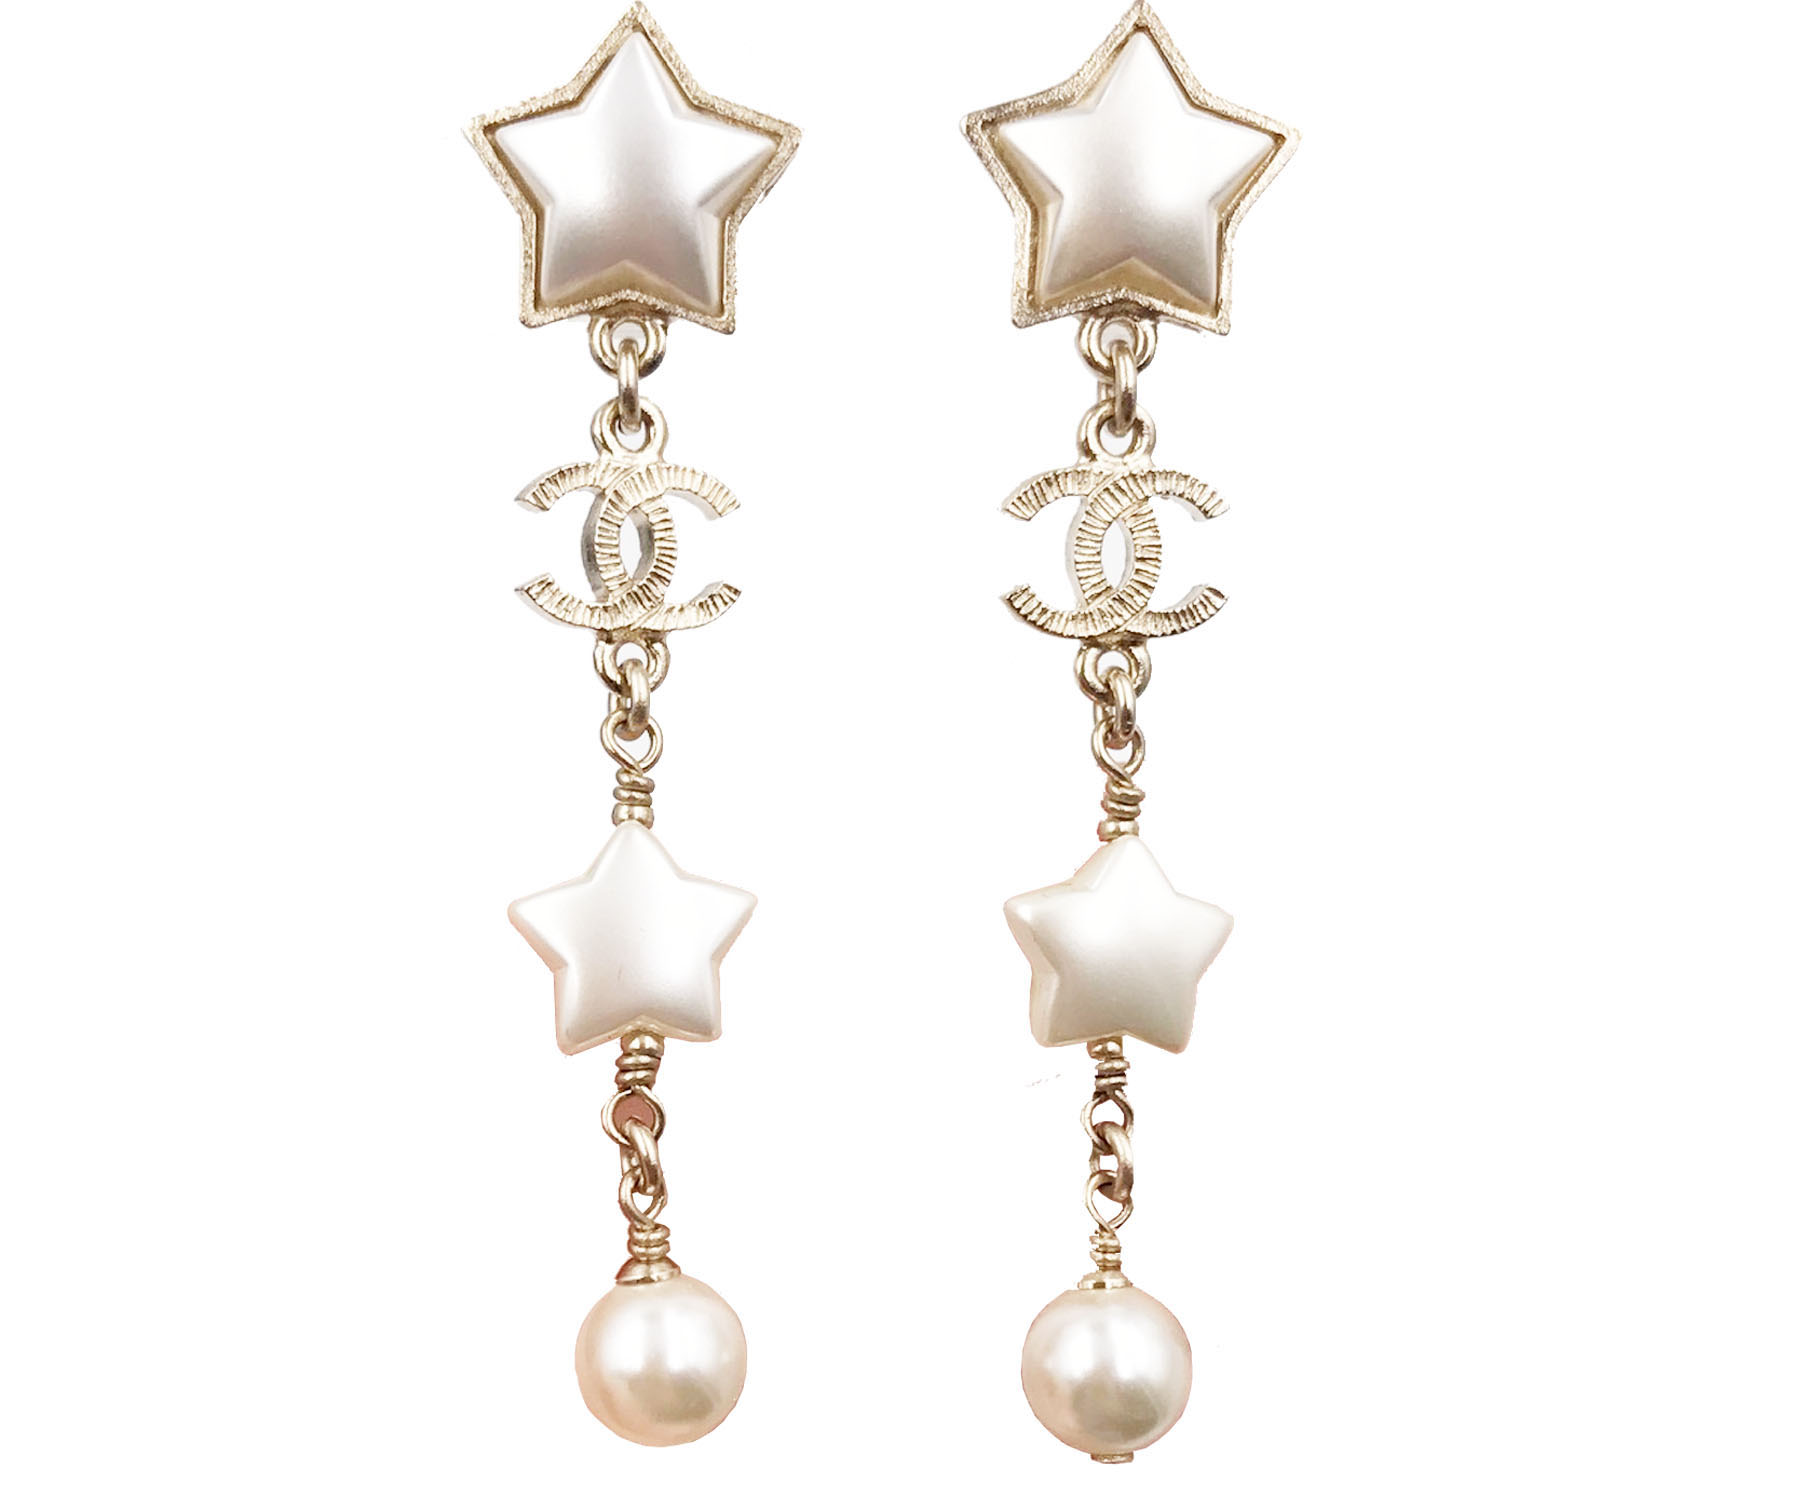 Chanel Brand New 17 Gold Star Faux Pearl Long Piercing